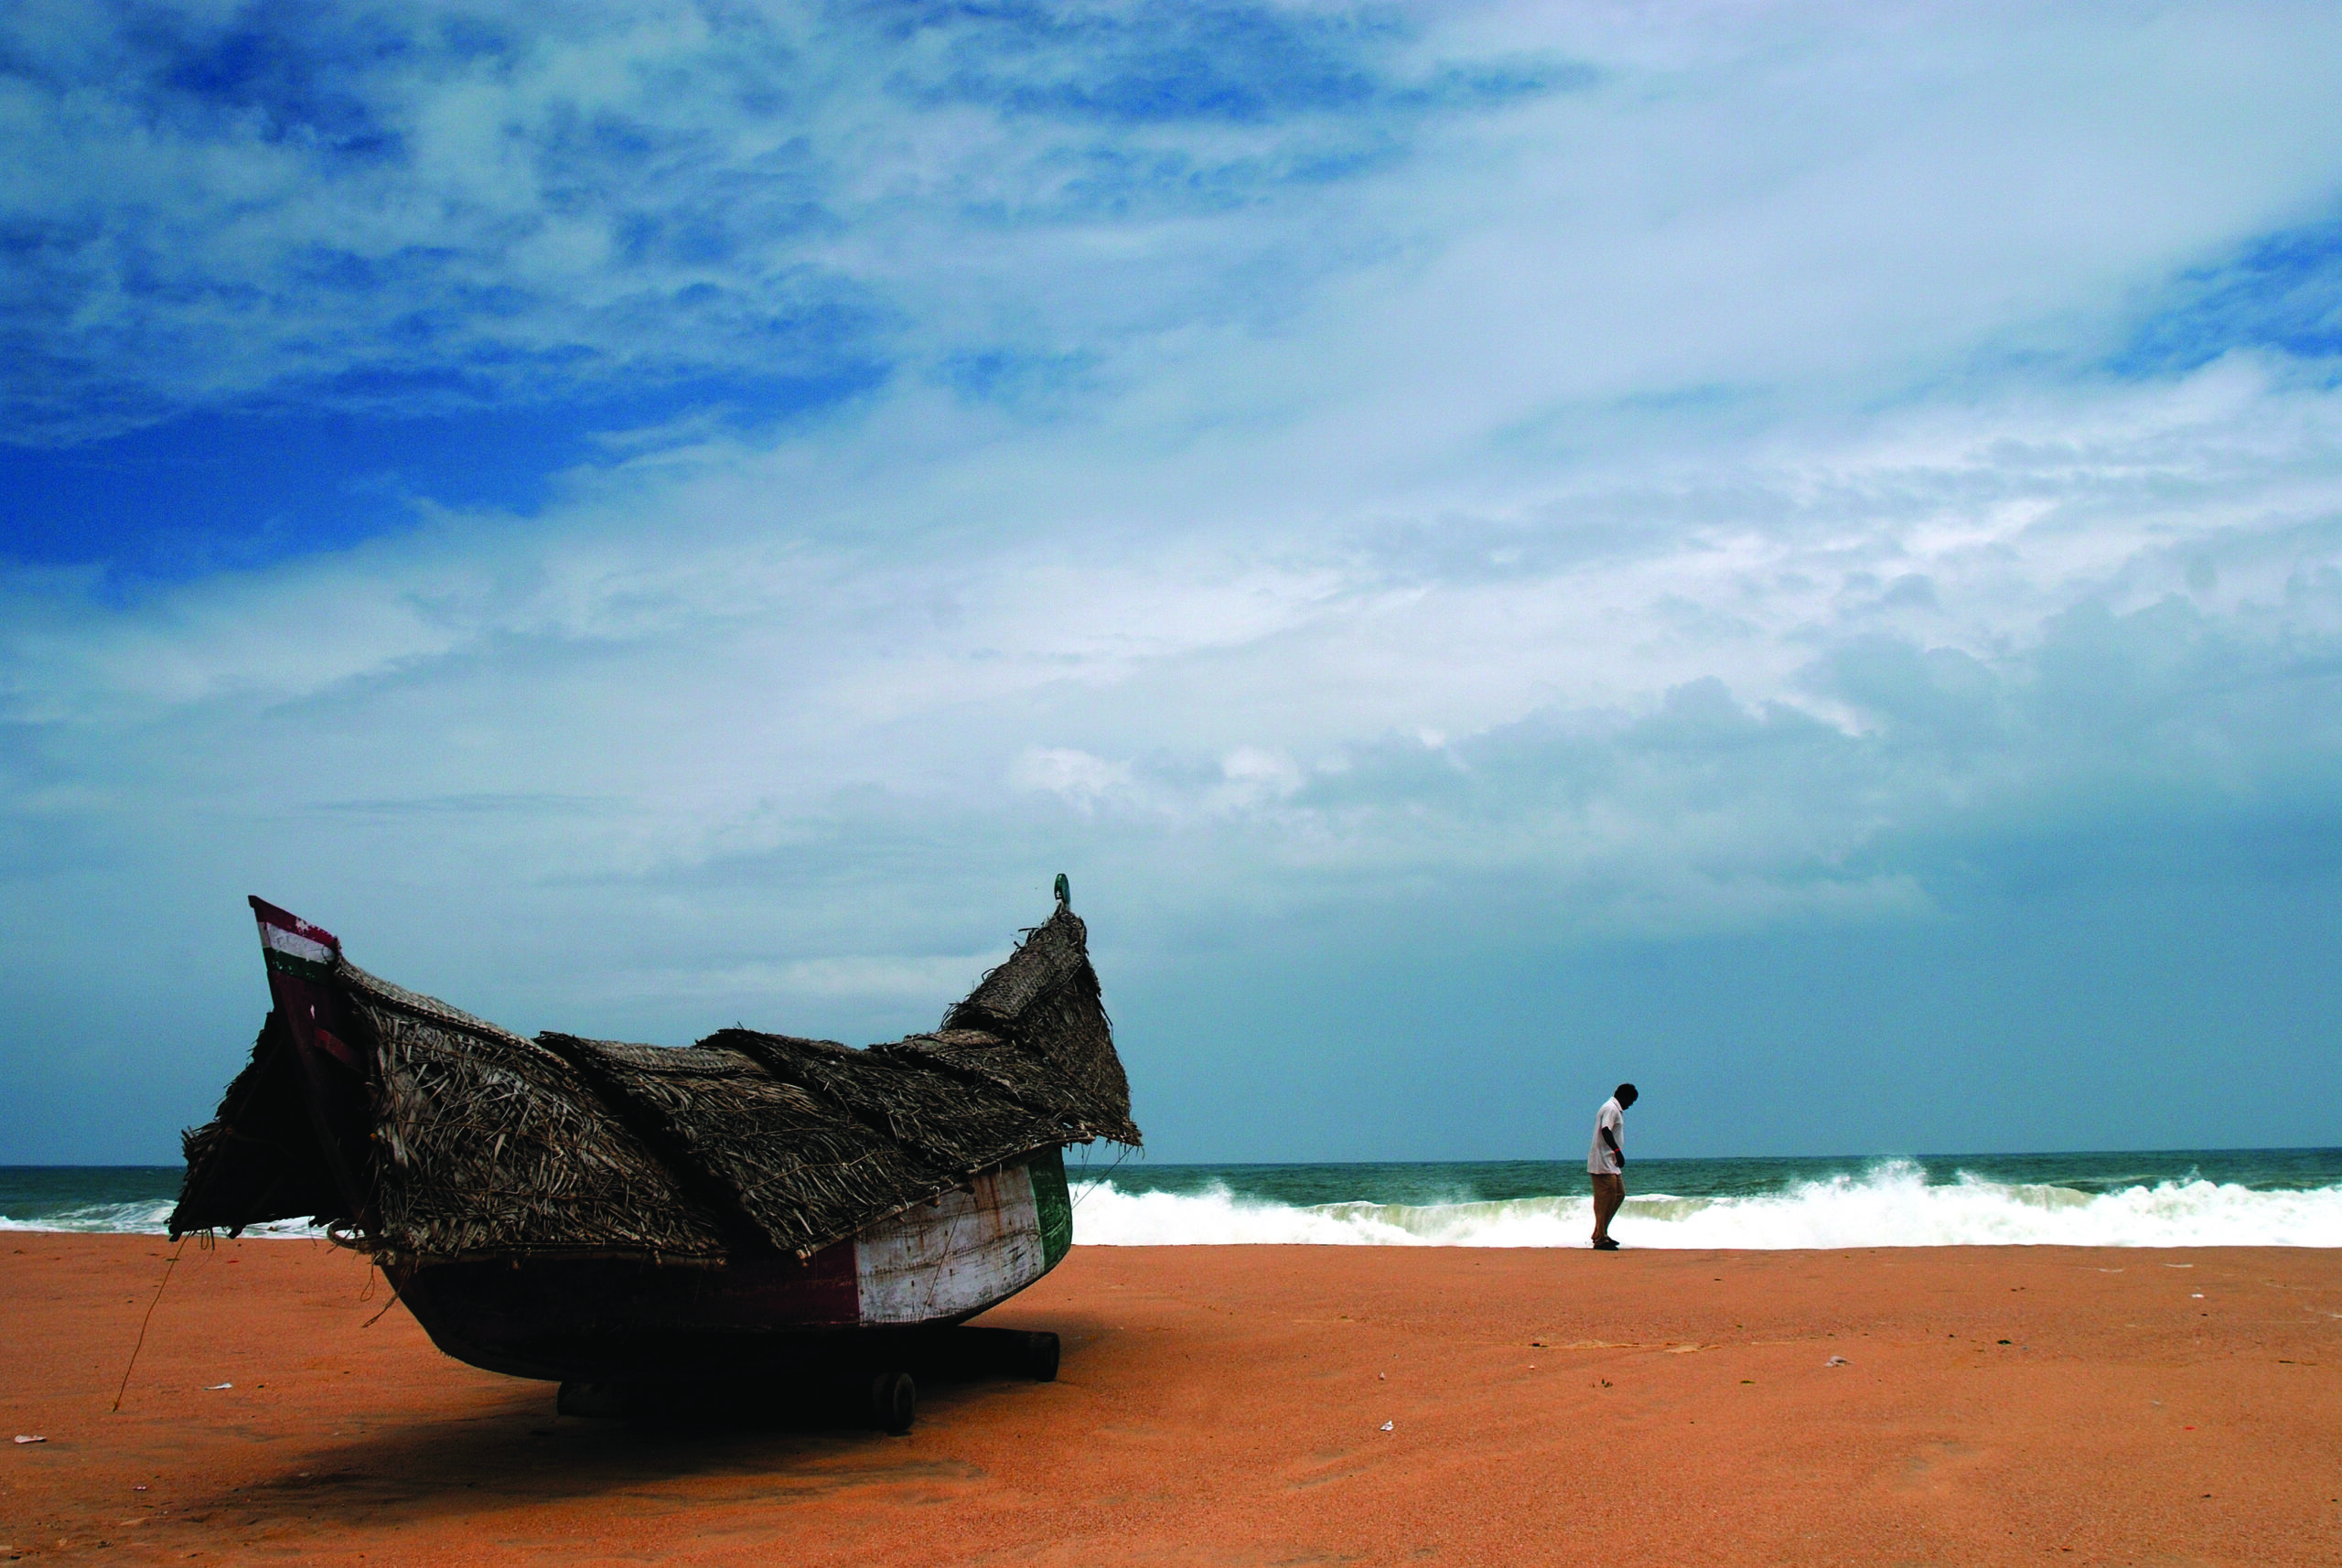 traditional boat sitting on an orange sand beach with a small figure near crashing surf on the beach in the background